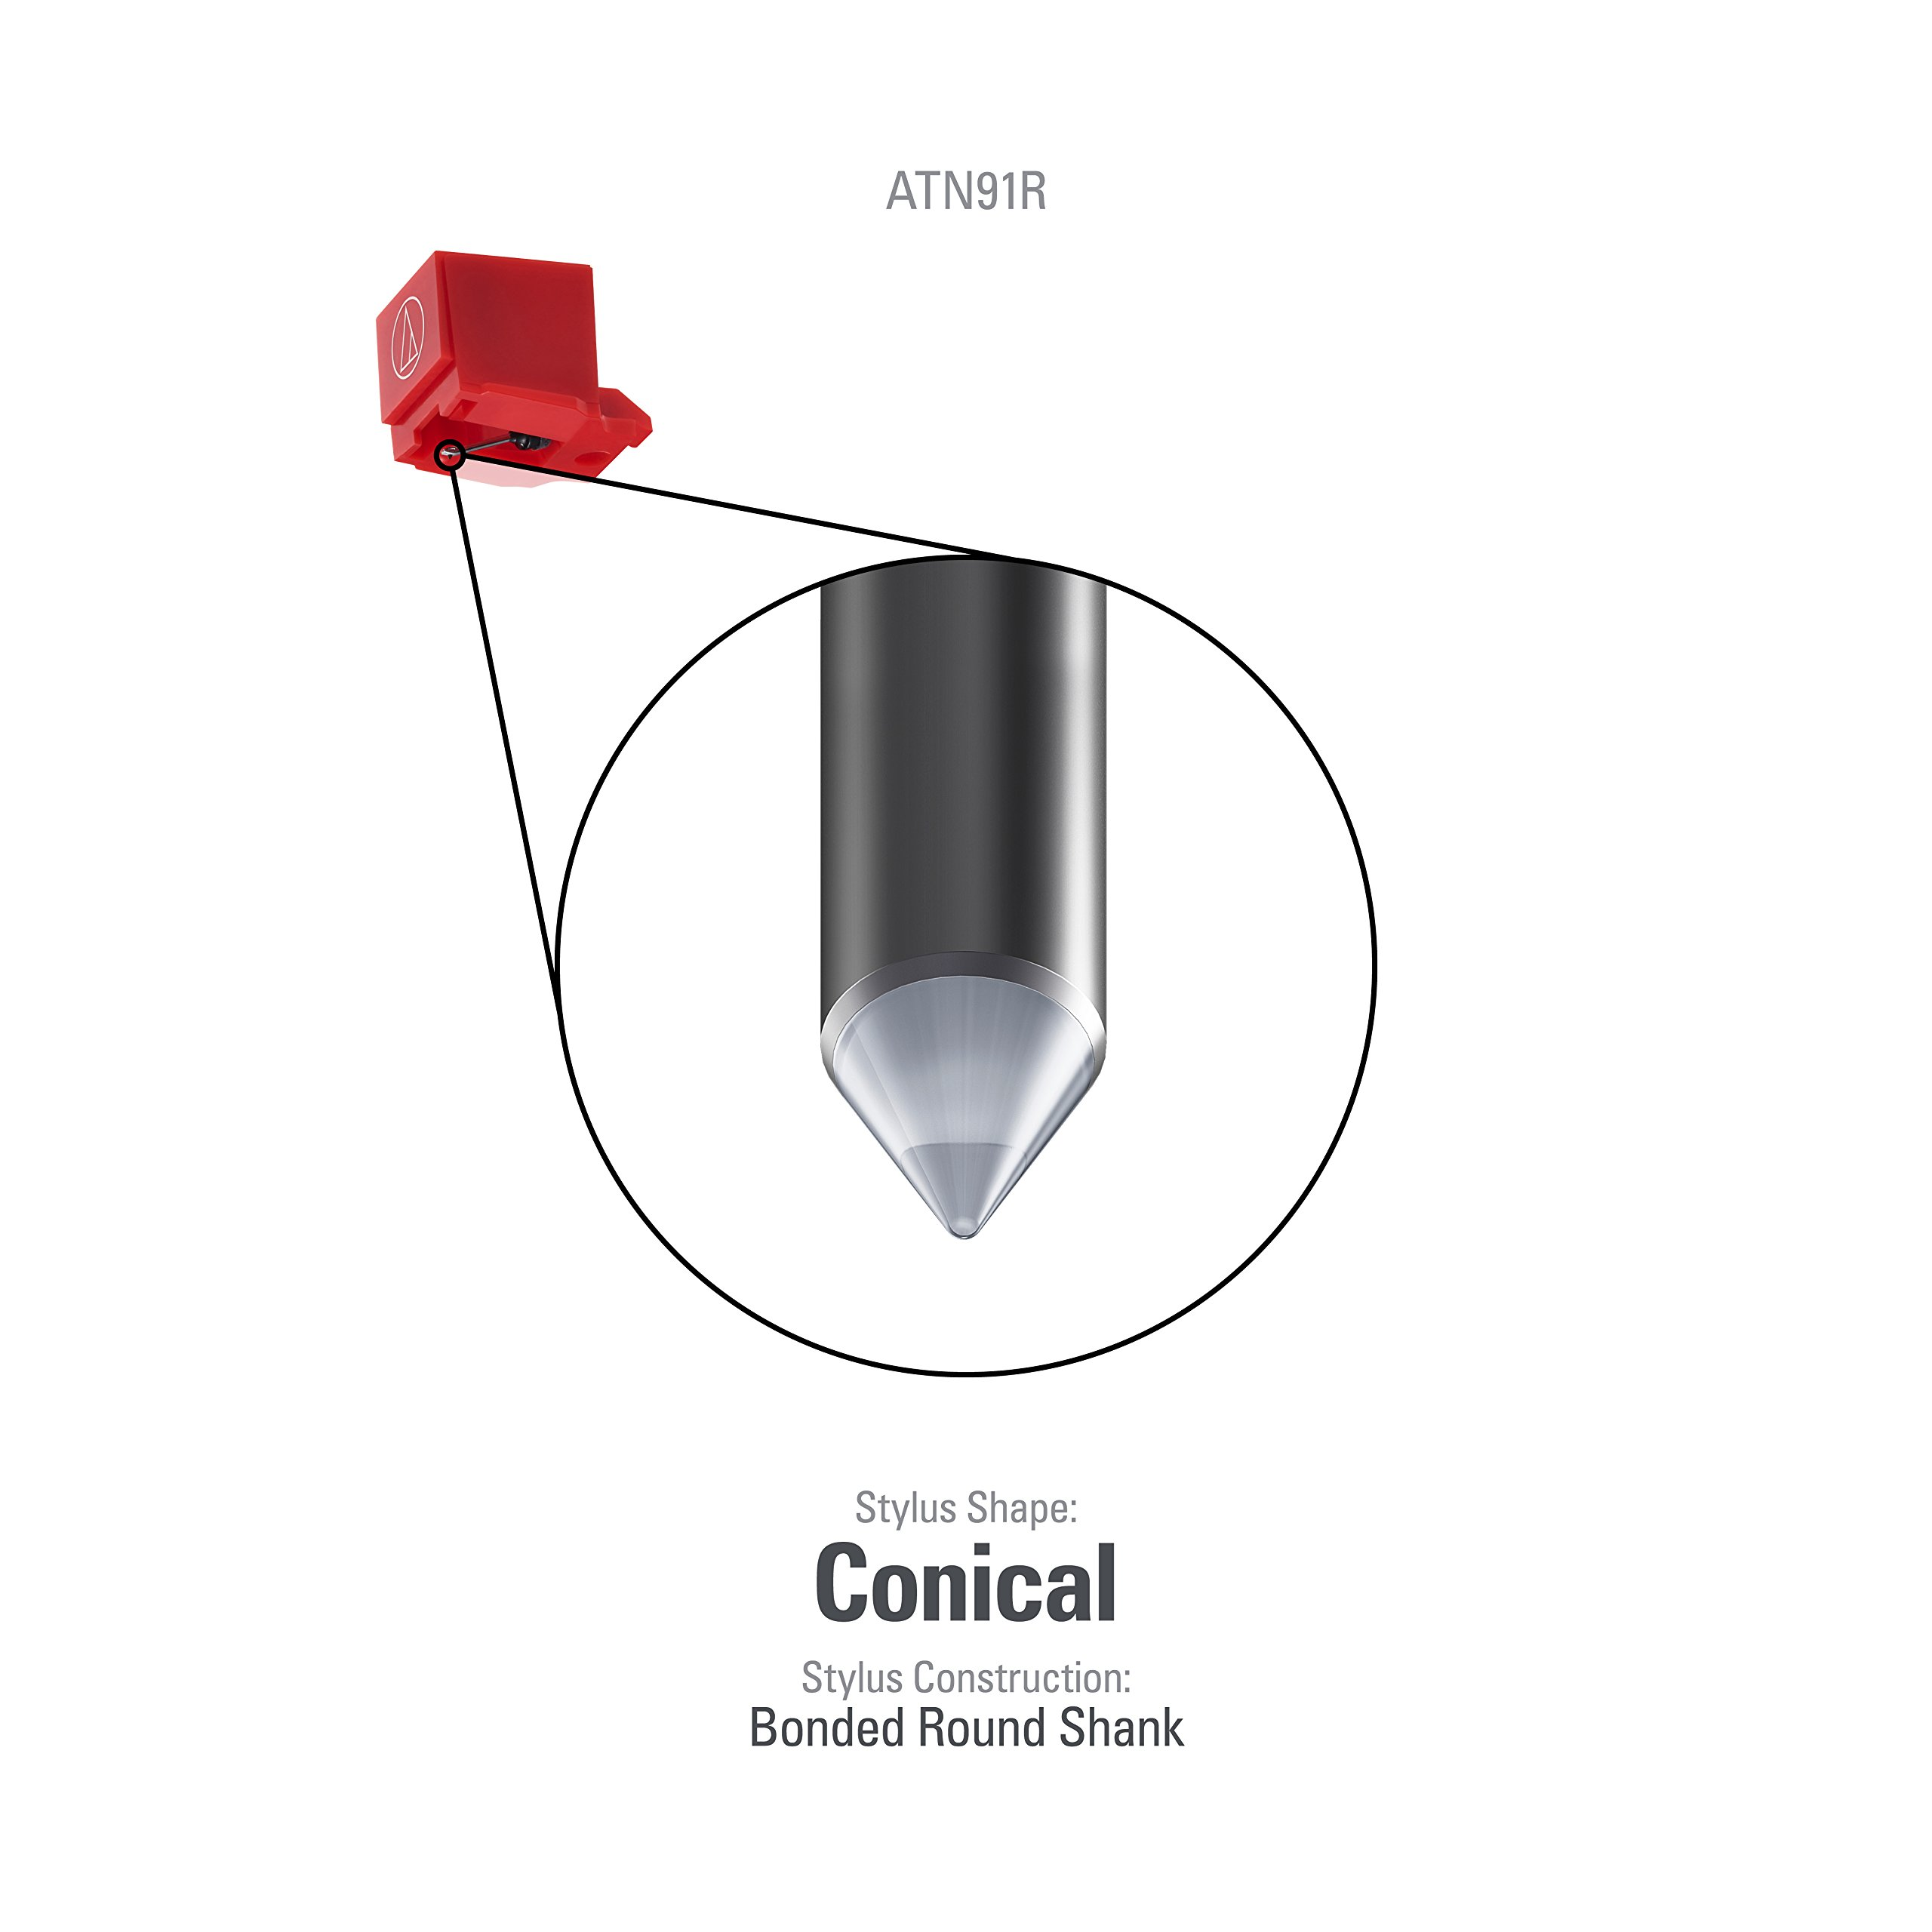 Audio-Technica ATN91R Replacement Conical Turntable Stylus for AT91R by Audio-Technica (Image #1)